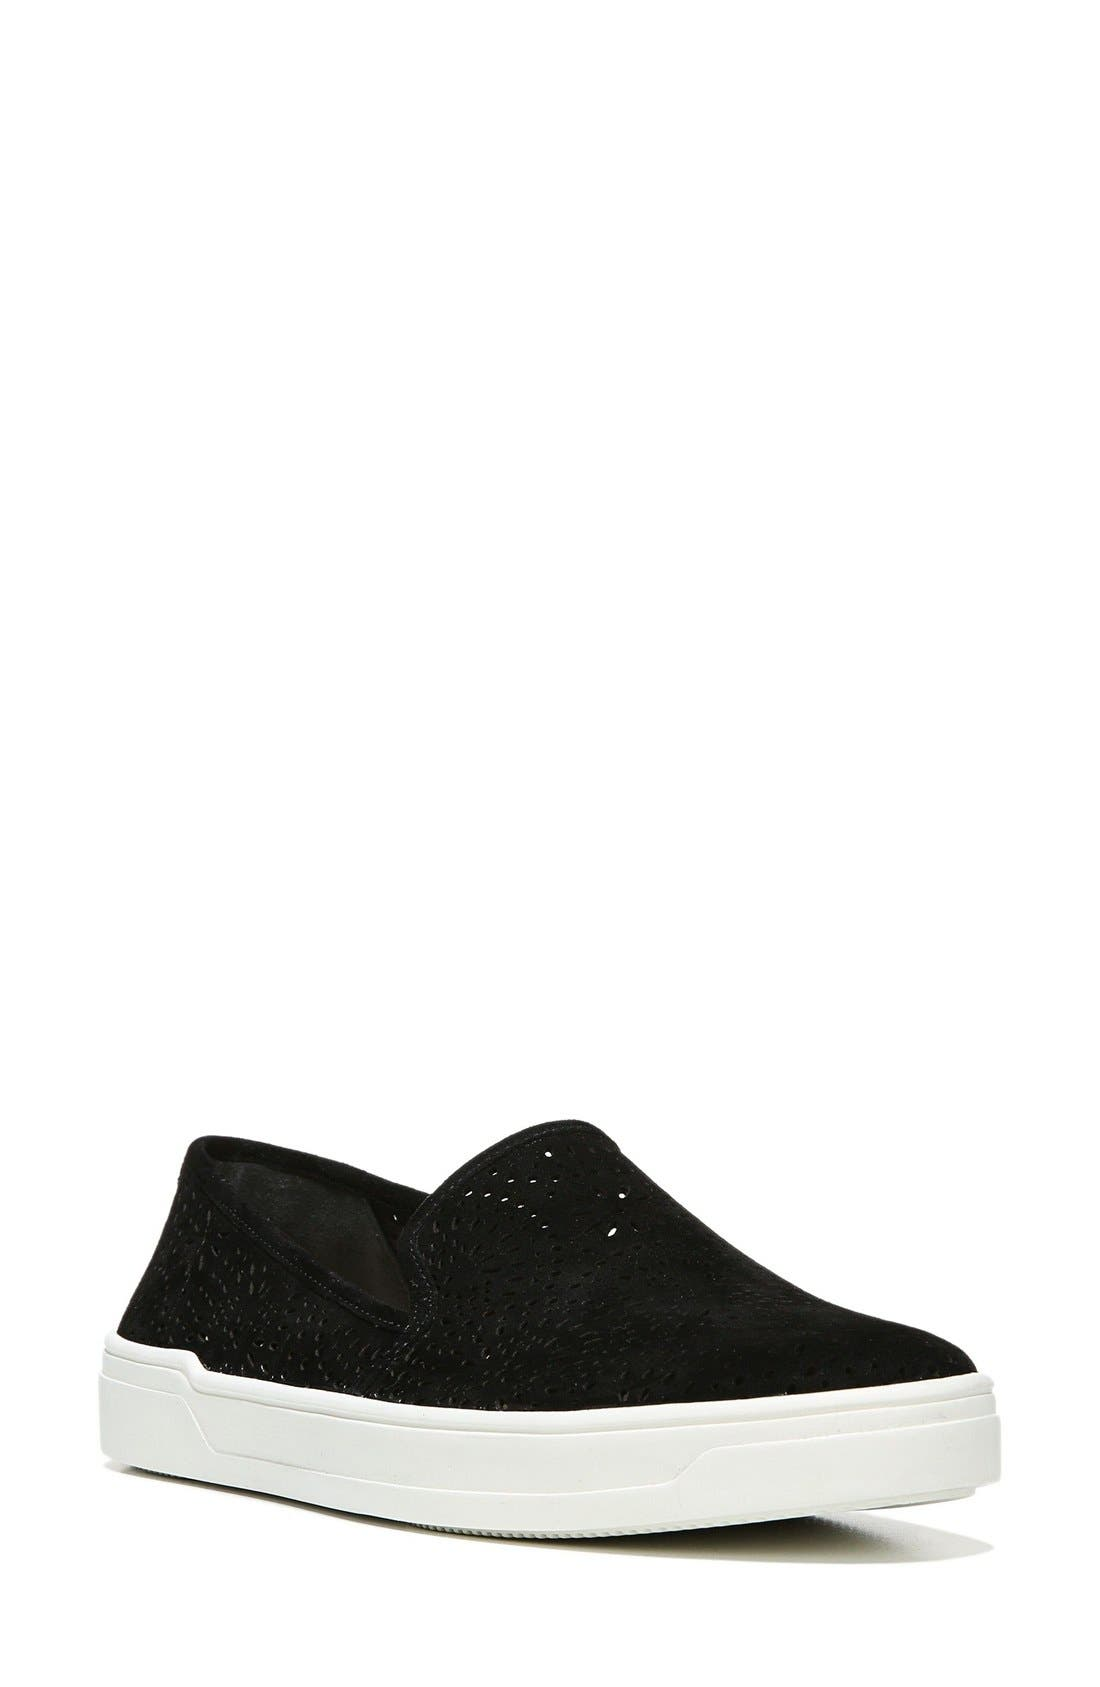 Main Image - Via Spiga Gavra Perforated Slip-On Sneaker (Women)